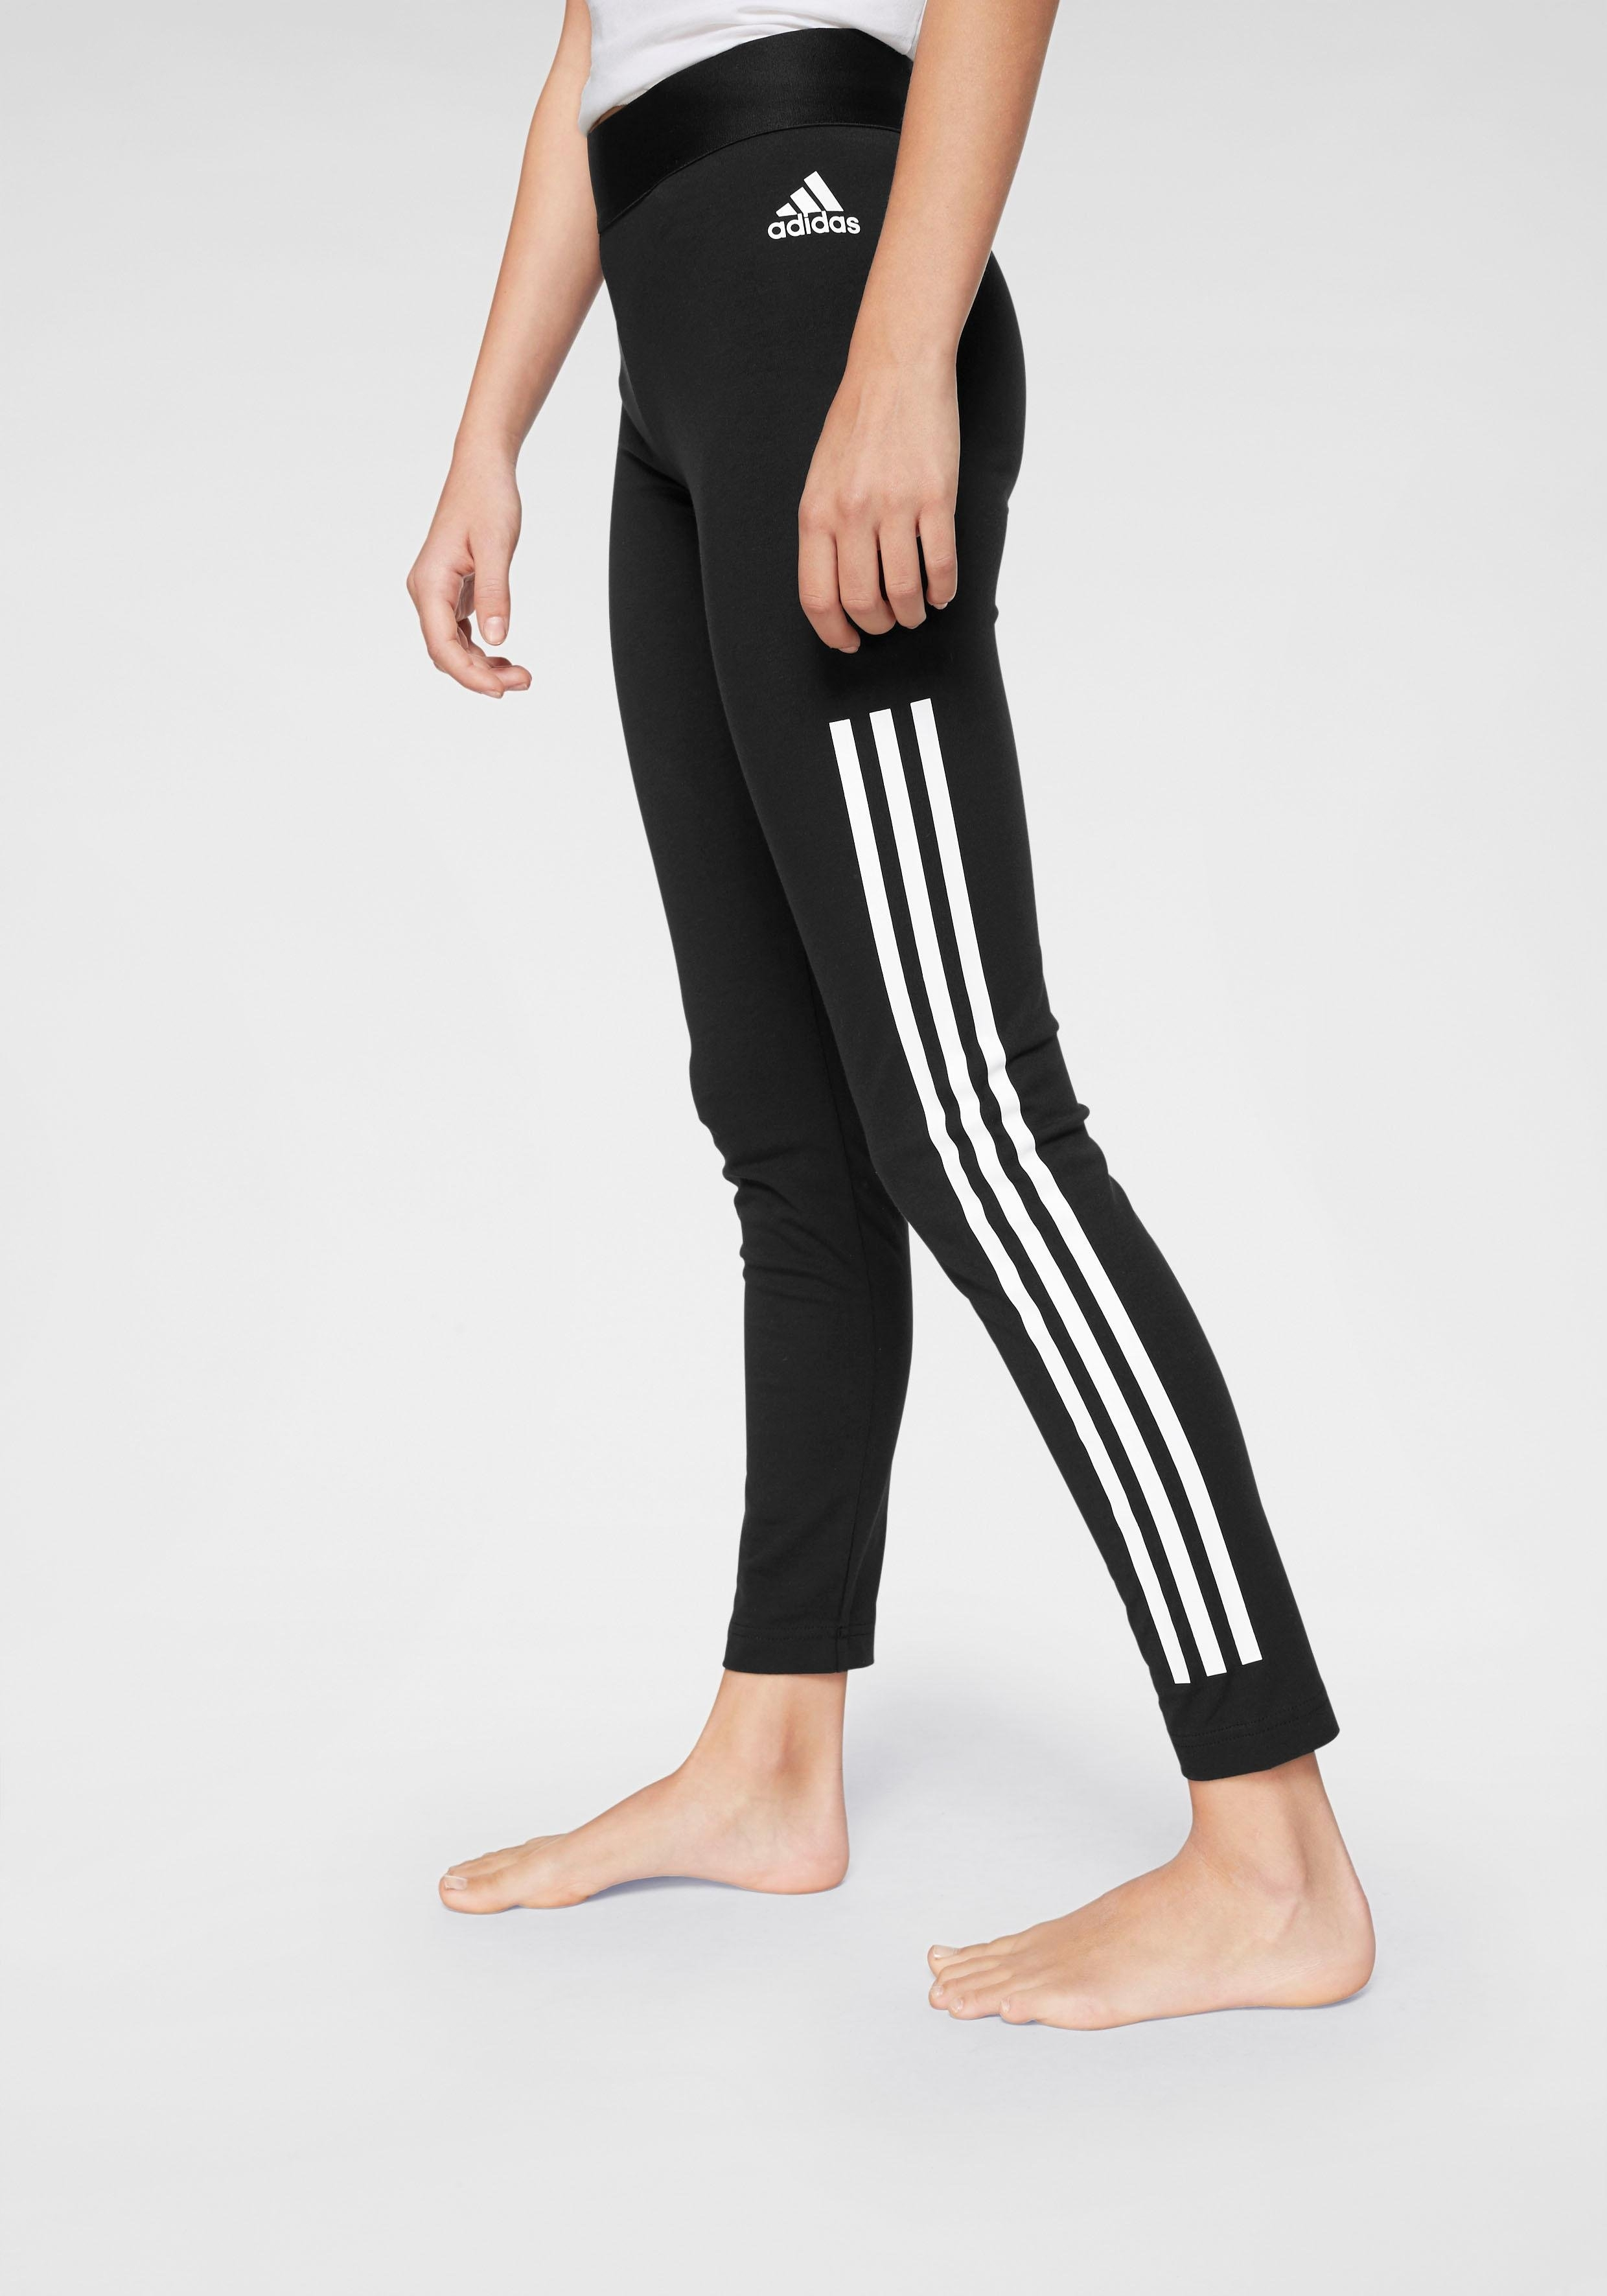 adidas Performance legging »YOUNG GIRLS MUST HAVE 3 STRIPES TIGHT« nu online kopen bij OTTO